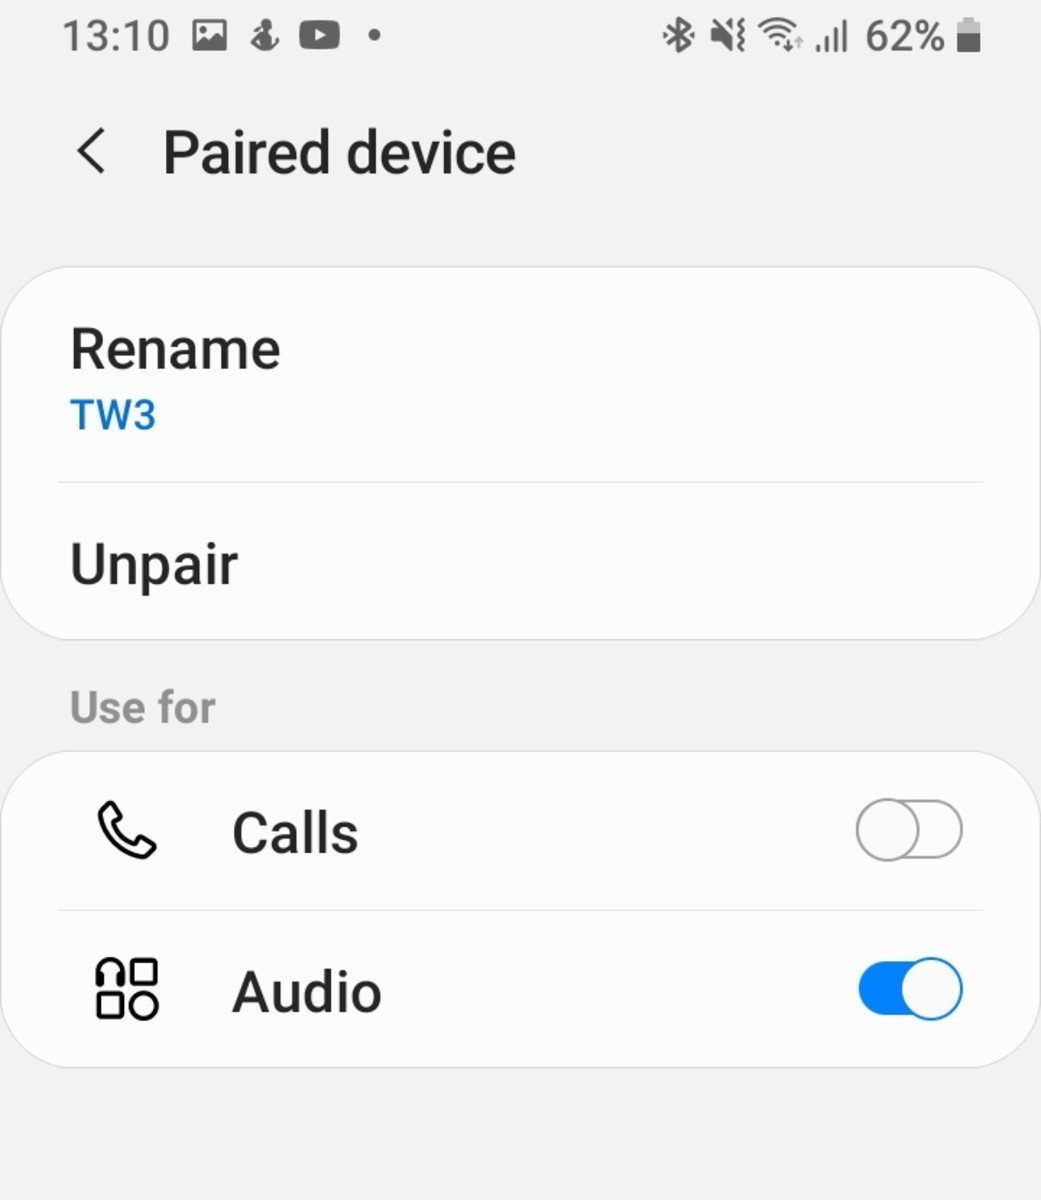 To unpair earbuds that haven't been synced with each other but are paired to a device you click on unpair in Bluetooth.  This will remove that device from your recent Bluetooth pairing list. You remove both earbuds from the paired list